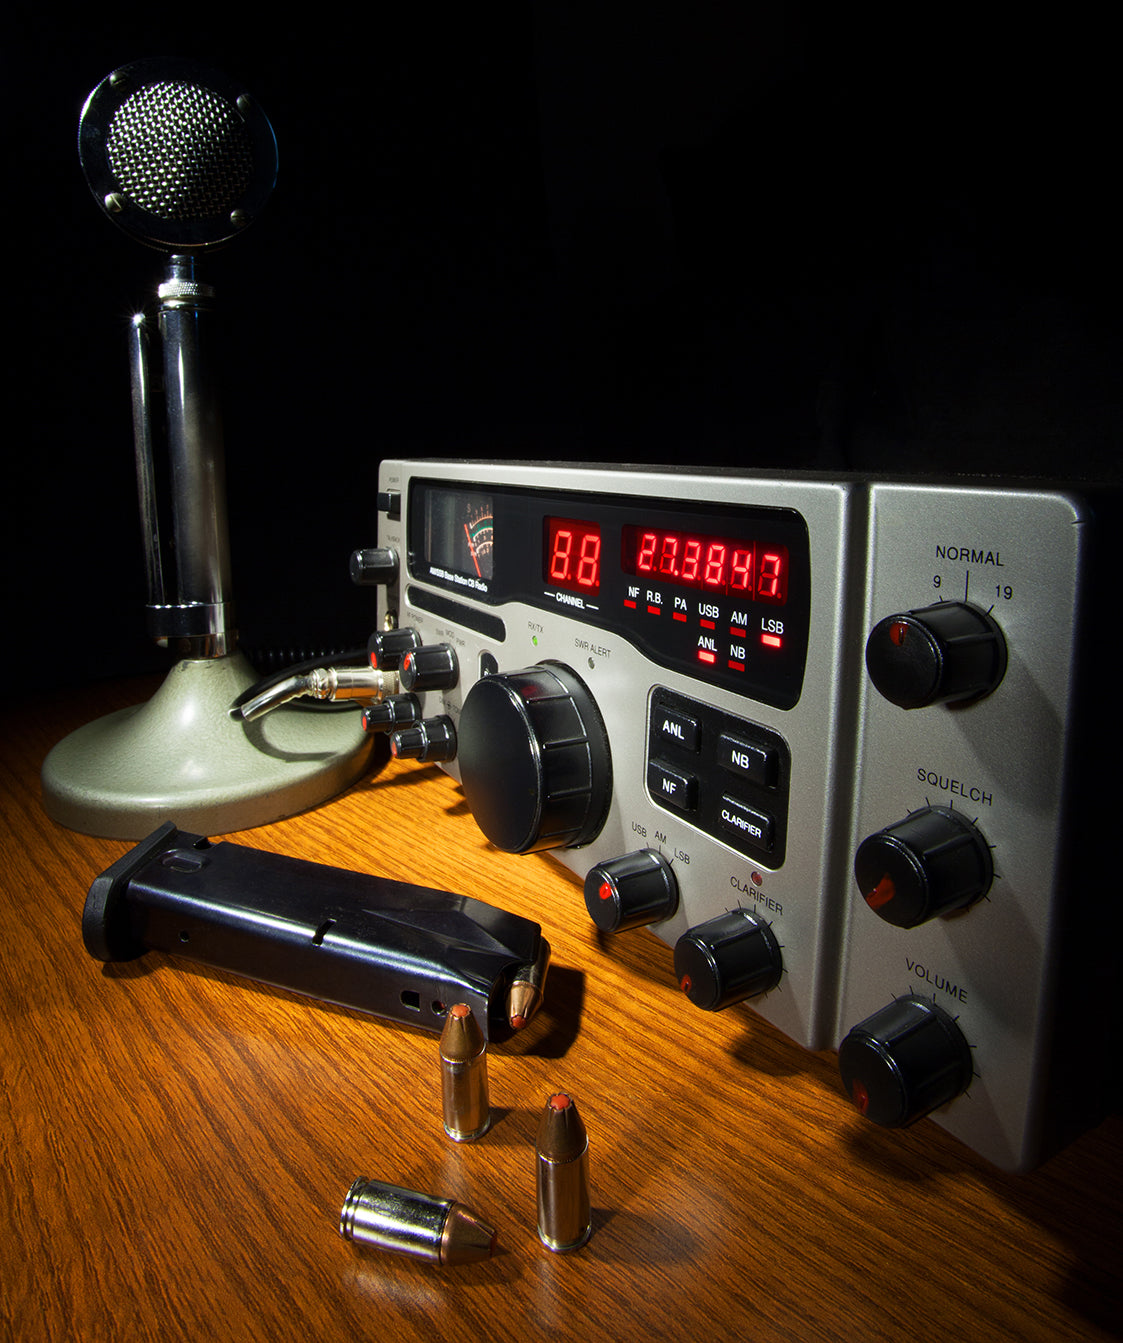 How to Maintain Your CB Radio for Long-Term Use